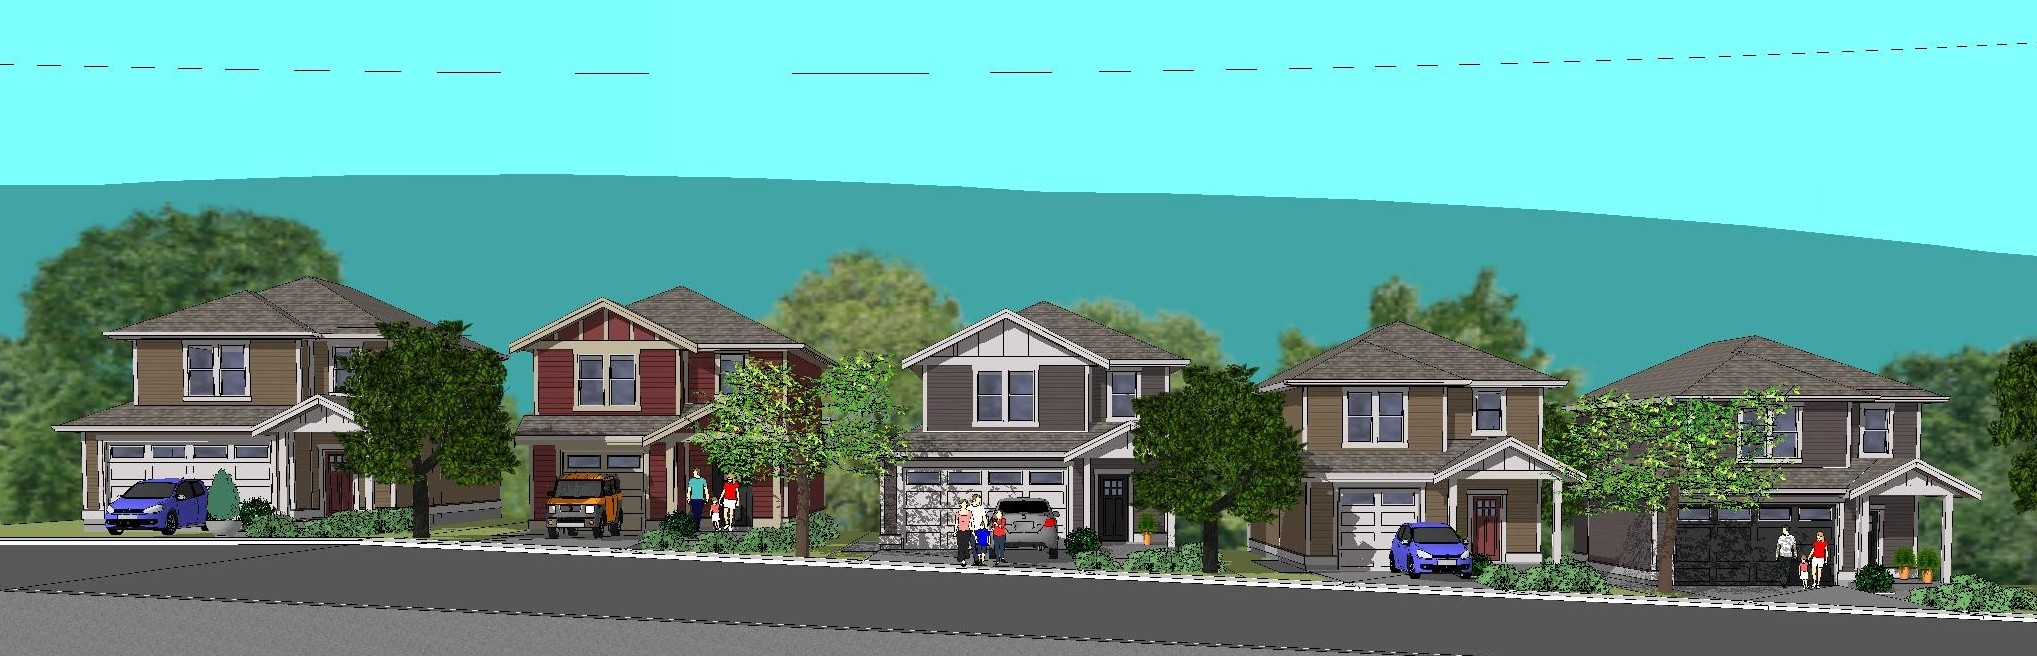 Sombrio and Tofino Plans at Woodland Creek